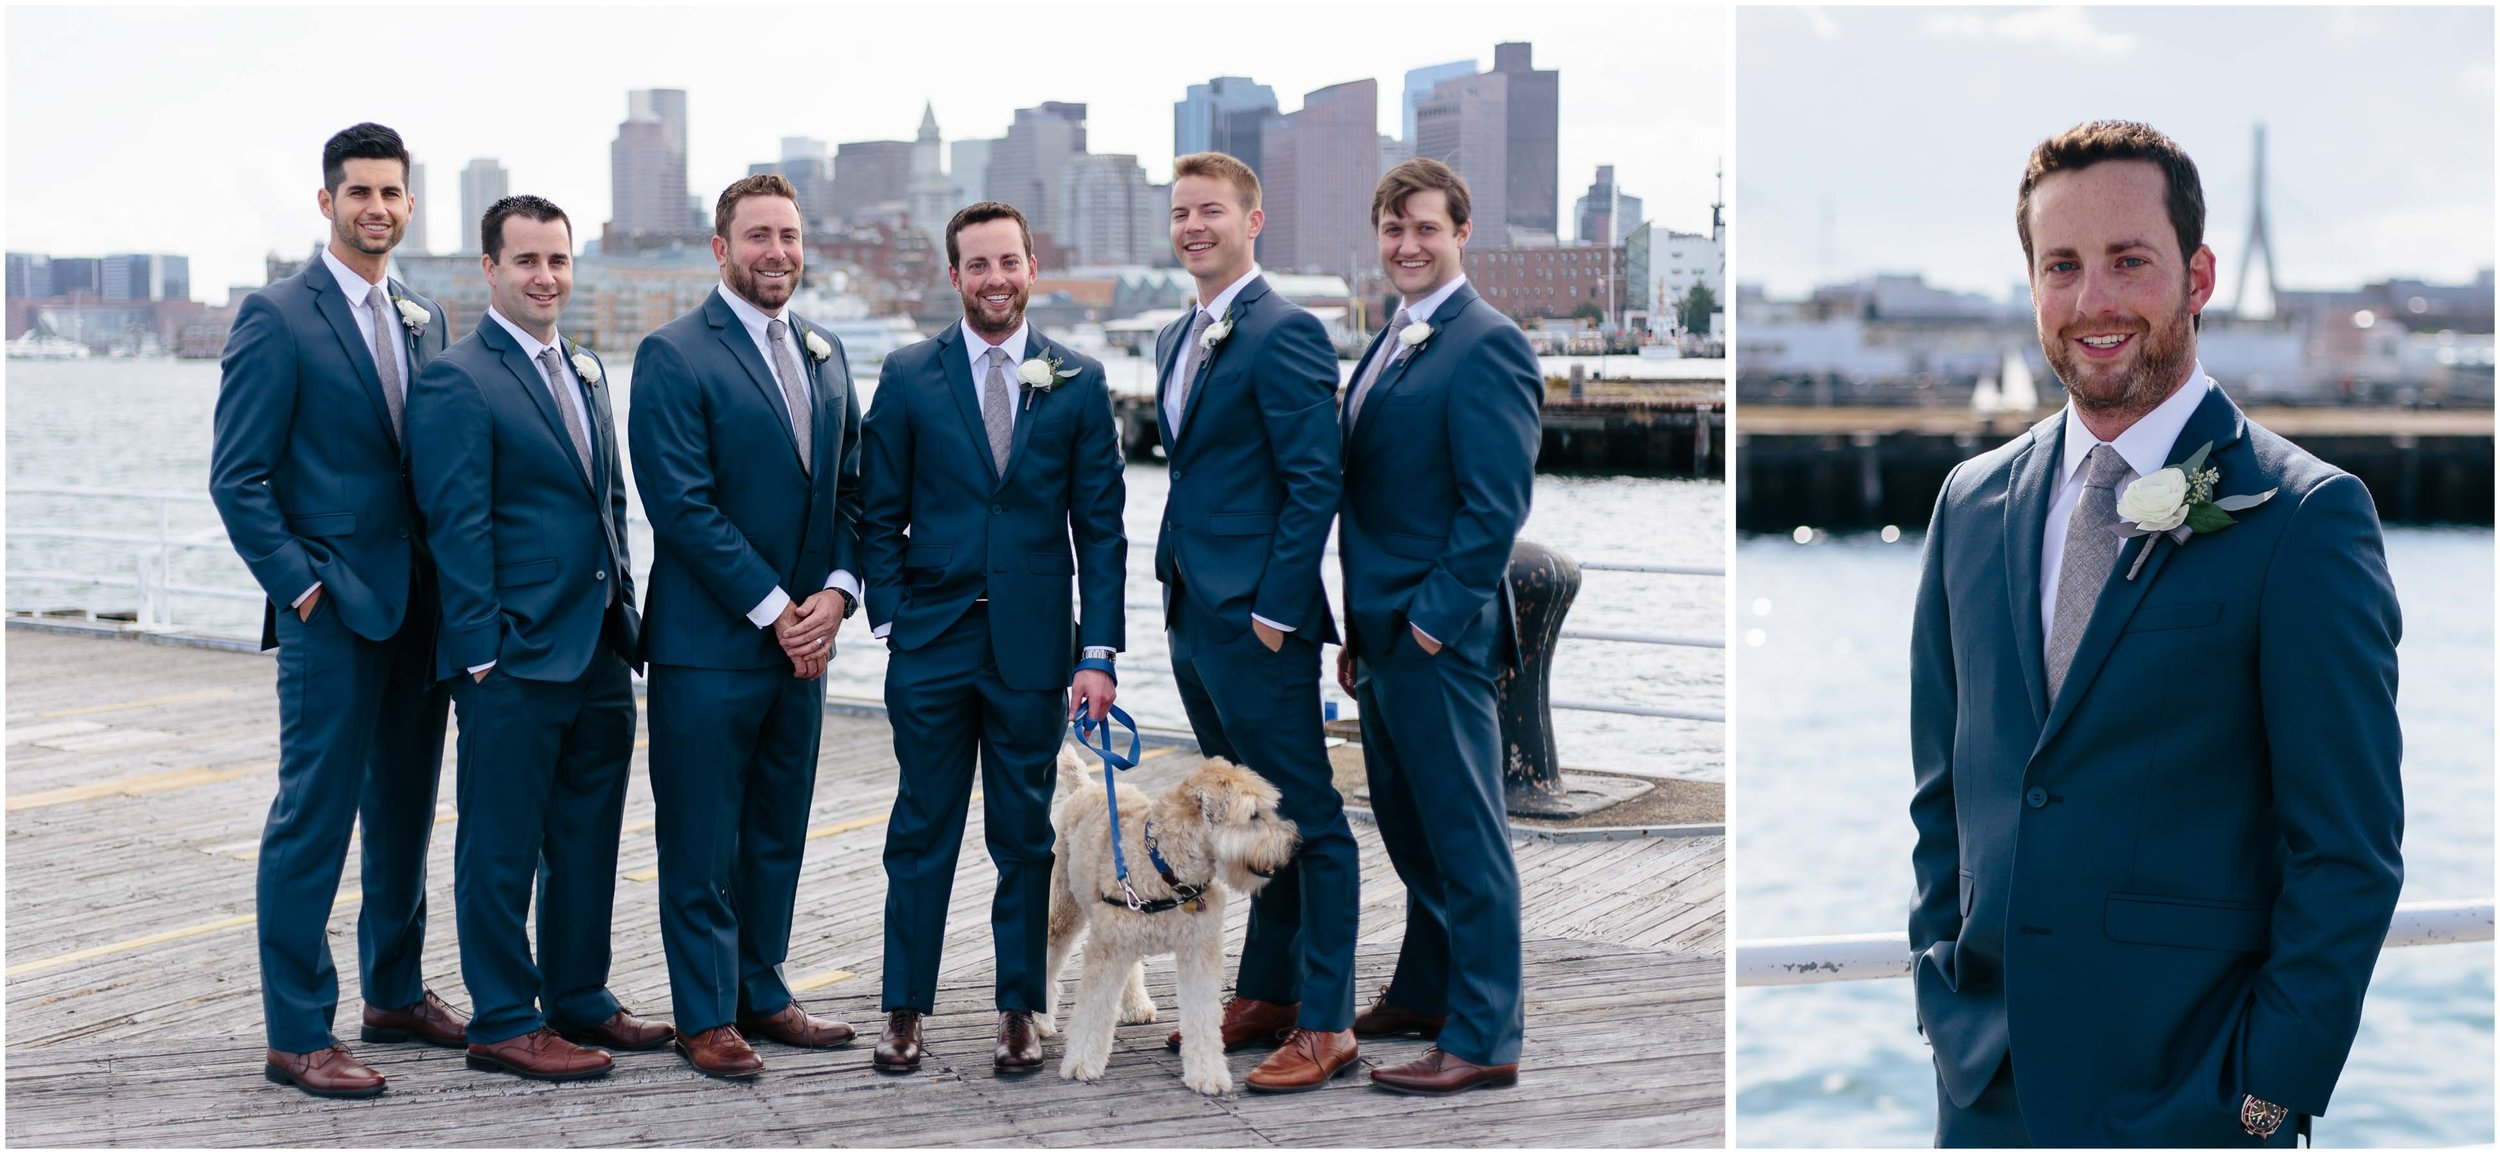 Nautical Massachusetts Jewish Wedding in the Boston Navy Yard groom and groomsmen and dog